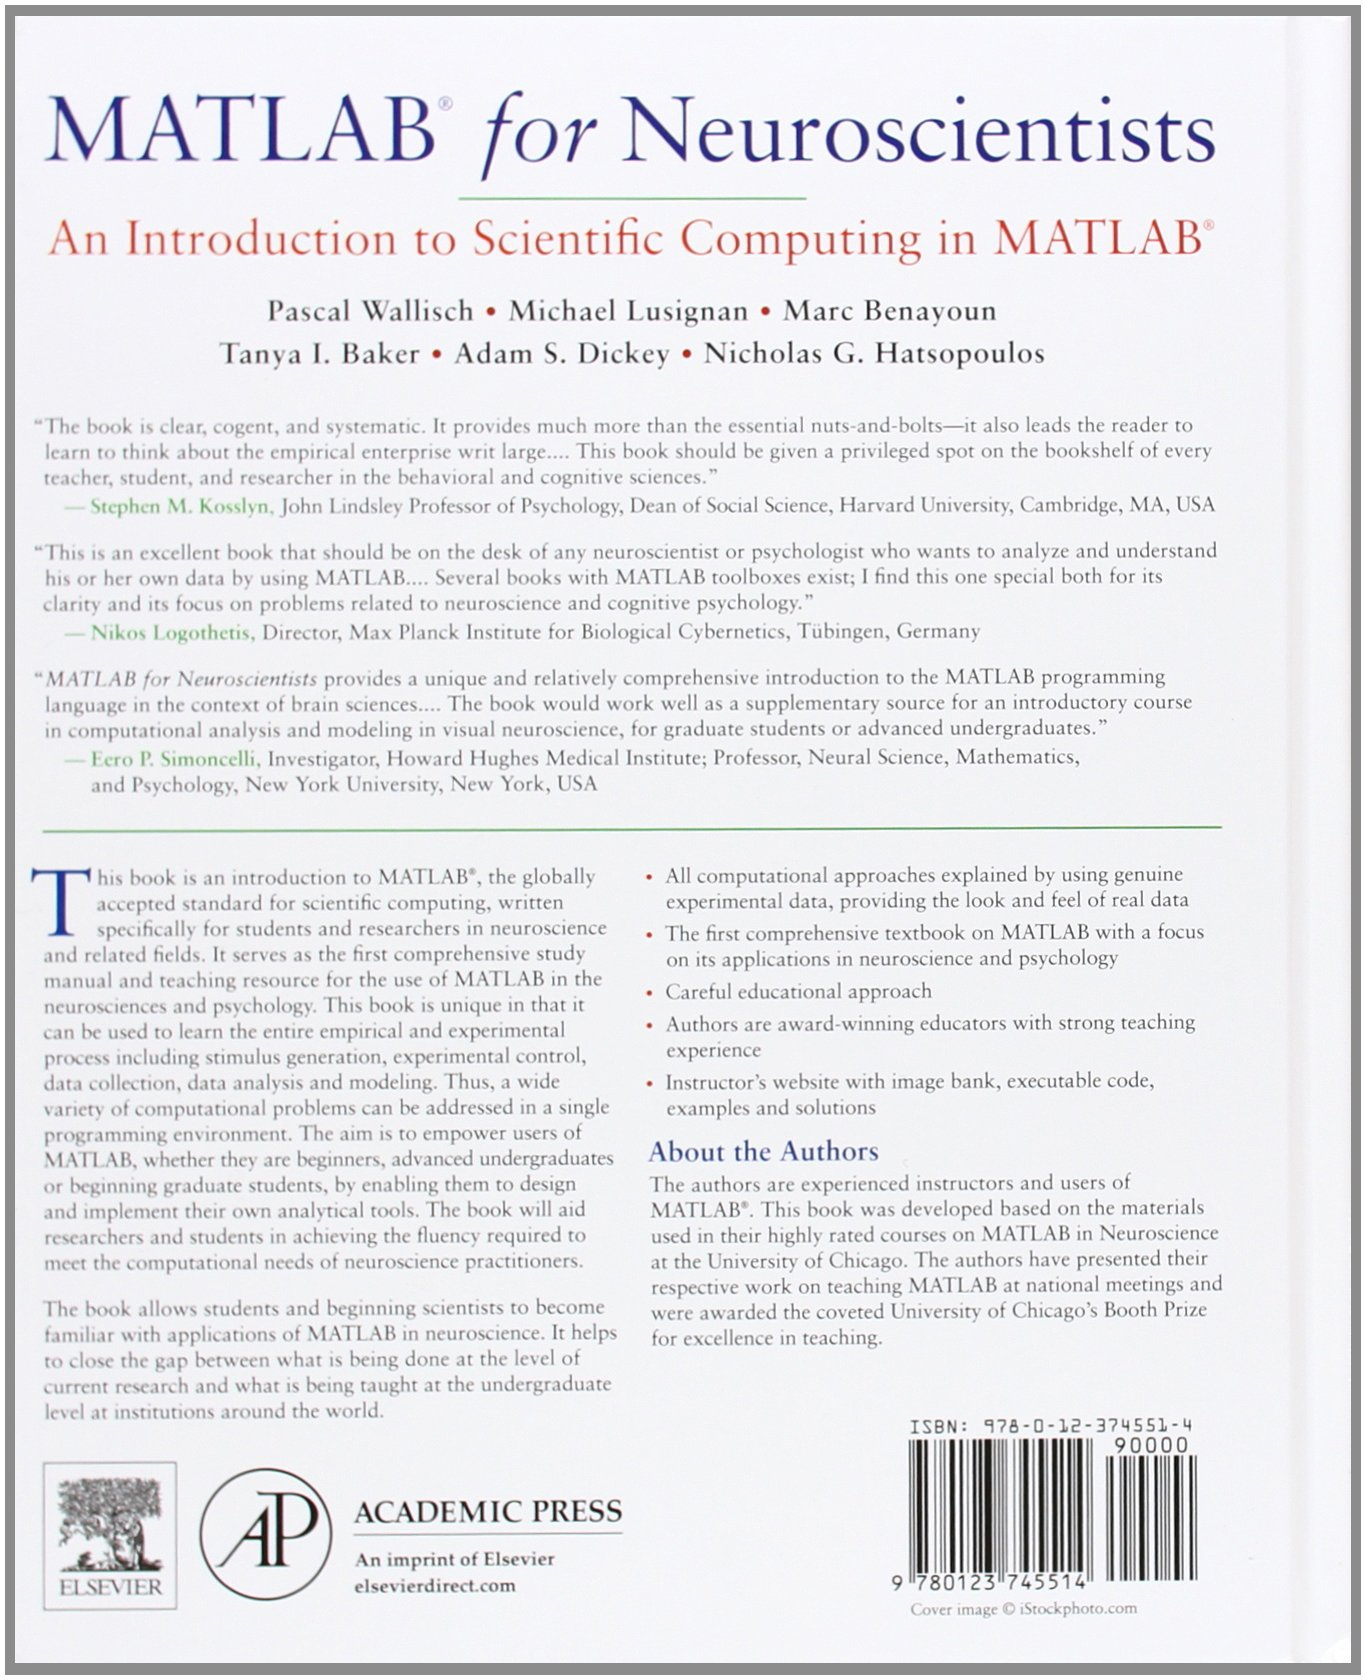 MATLAB for Neuroscientists: An Introduction to Scientific